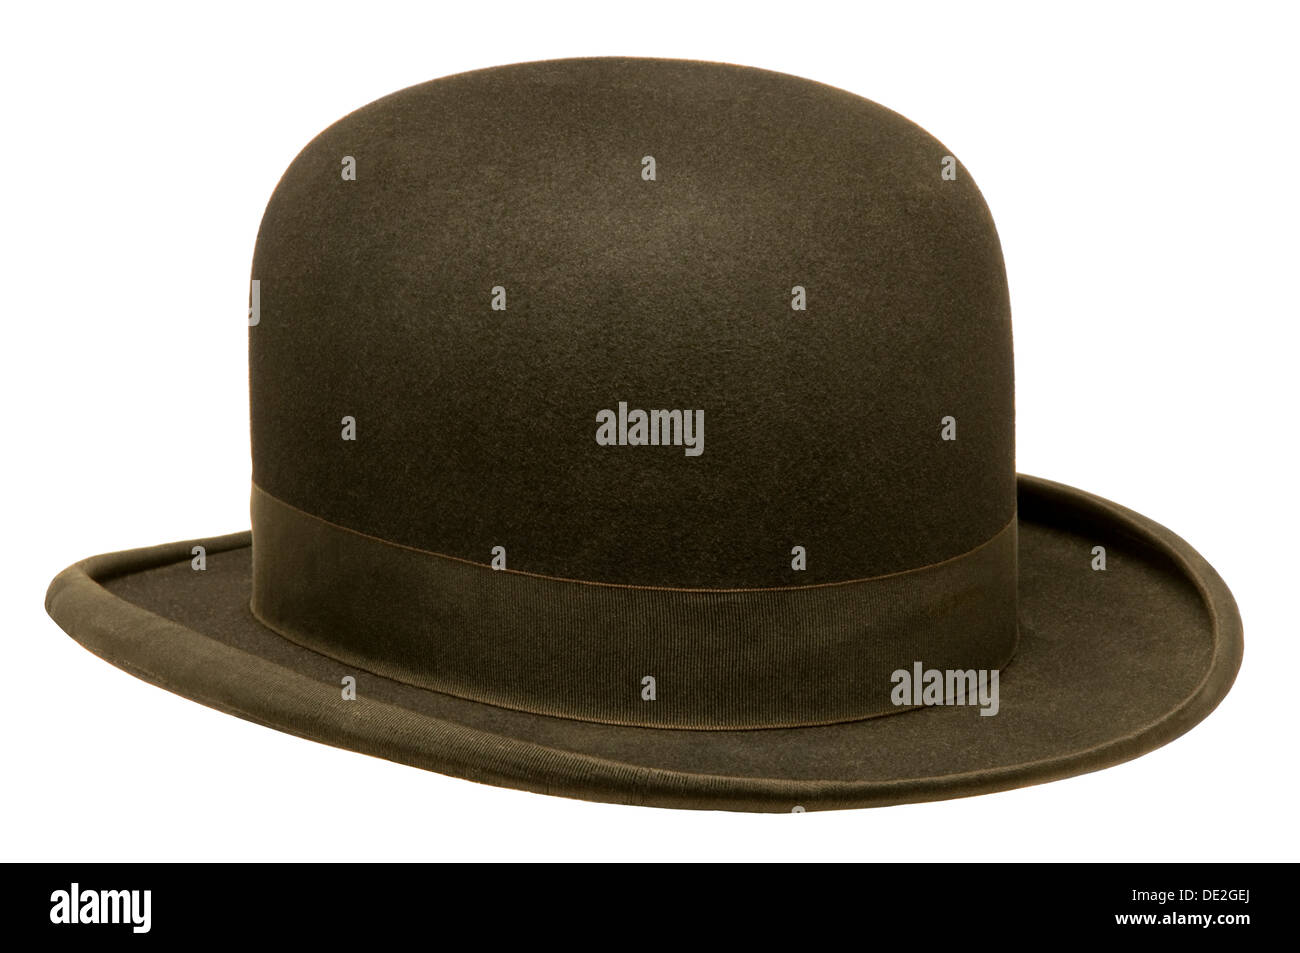 b63a7aaa Black bowler or derby hat isolated against white background - Stock Image